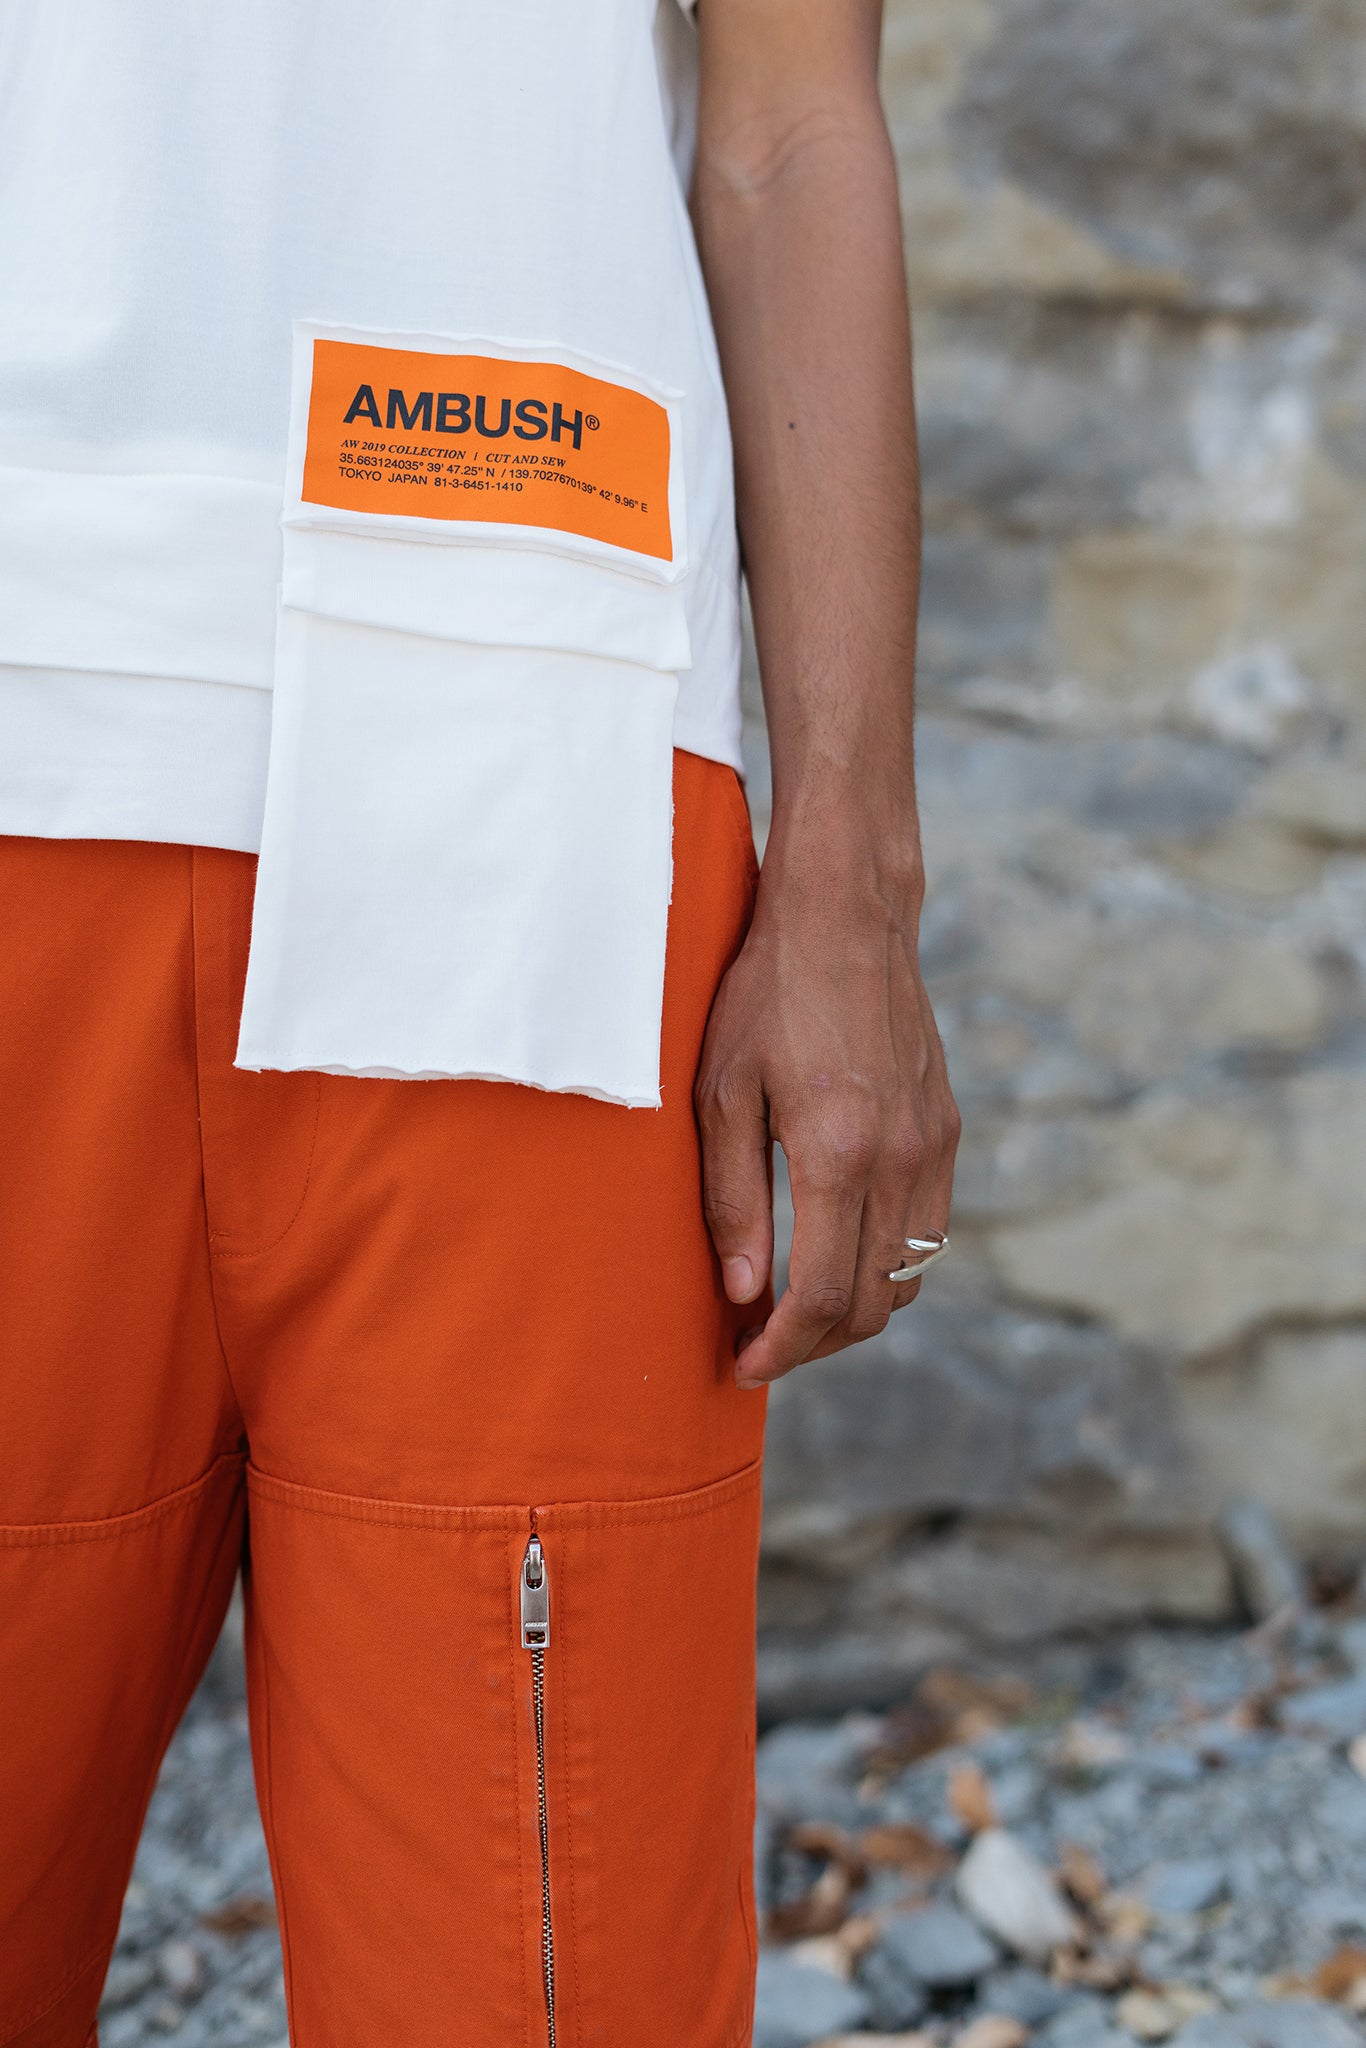 Ambush Autumn / Winter 19